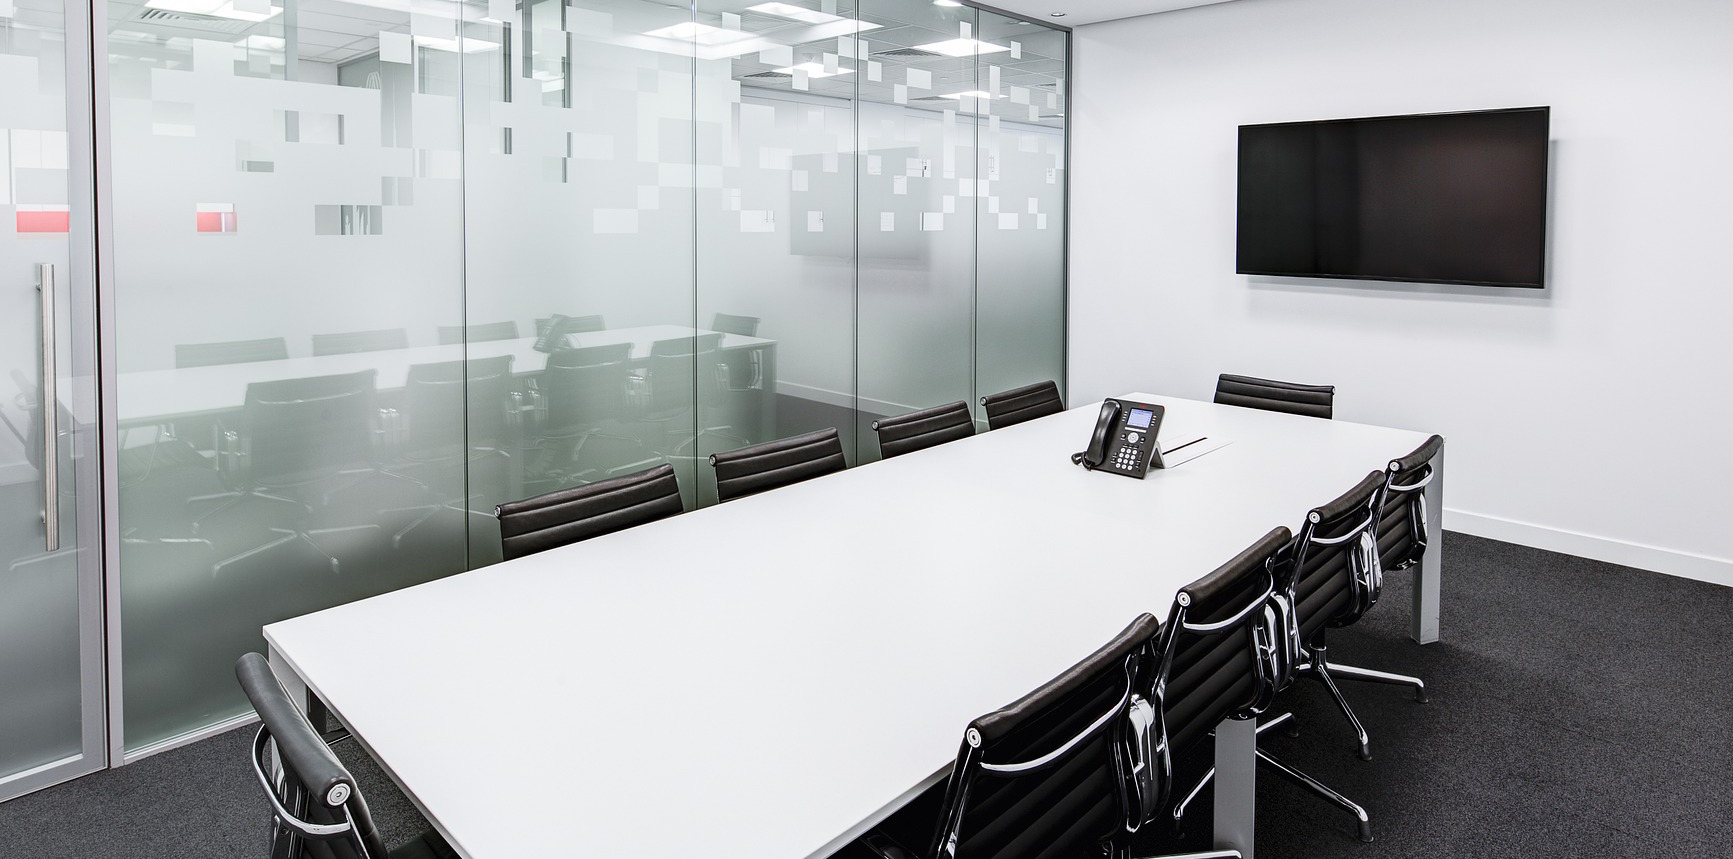 Conference Rooms Video Conferencing Projection Systems Lighting Shading  Networking Control Systems Video Wall Part 95